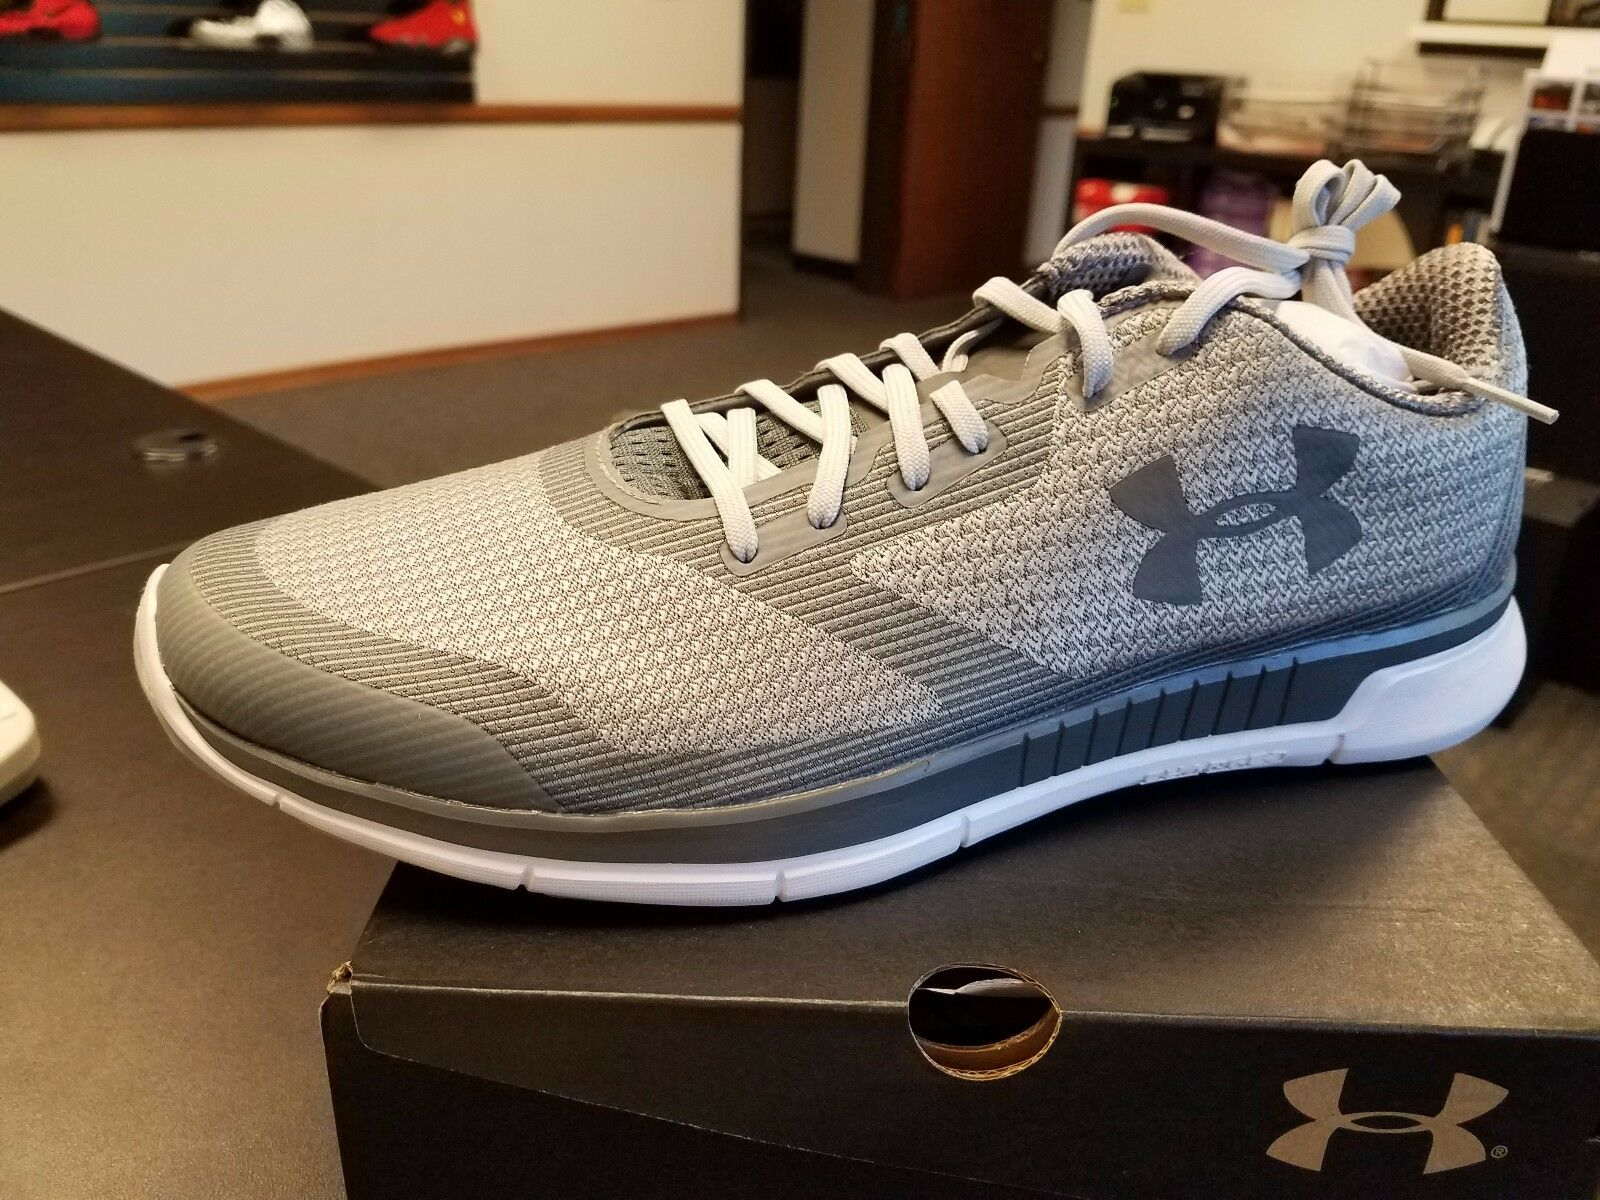 Brand New Under Armour Mens UA CHARGED LIGHTNING Running Shoes 1285681-031 GREY